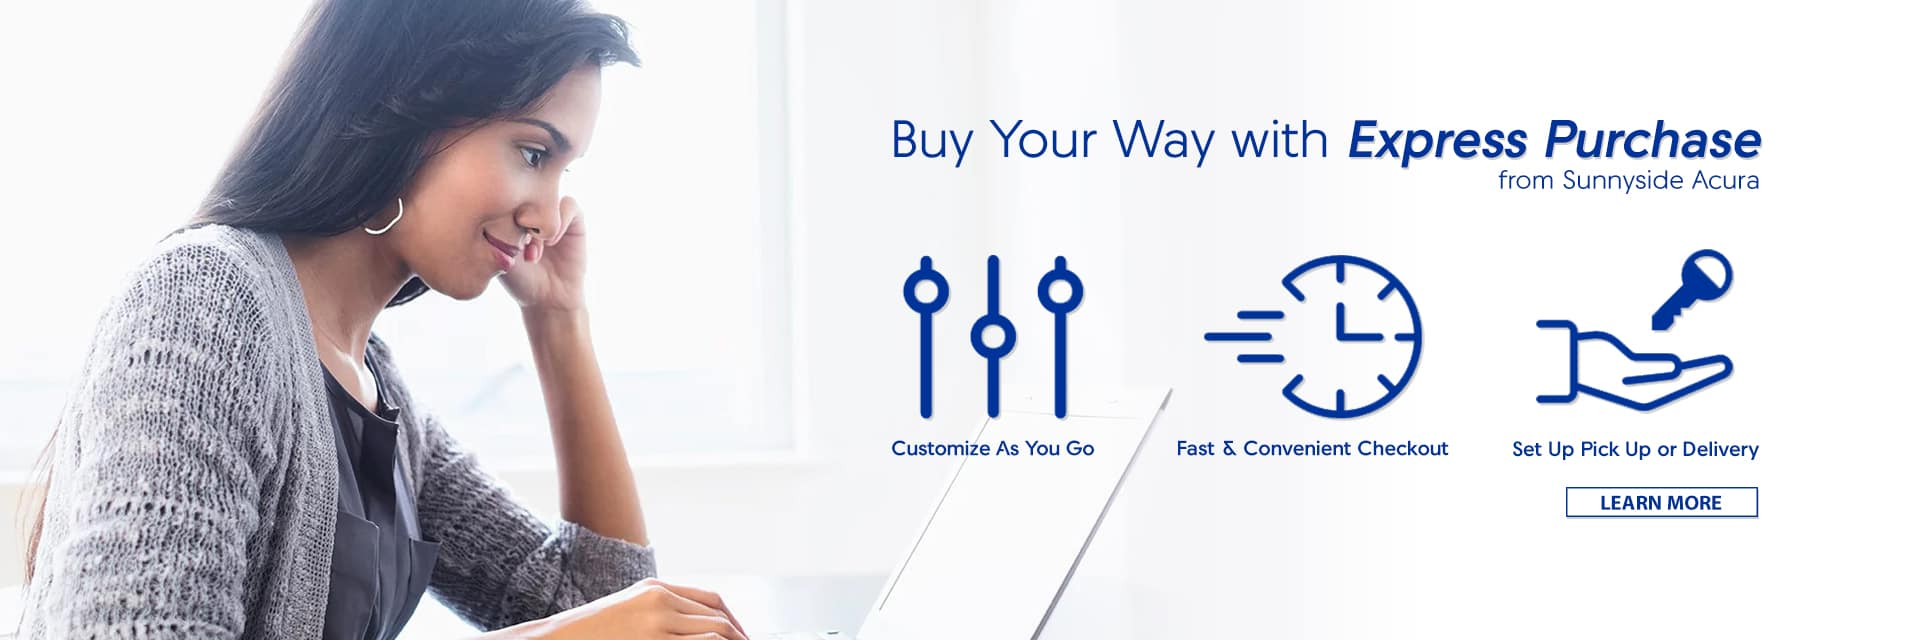 Buy Your Way with Express Purchase from Sunnyside Acura Nashua NH 03063